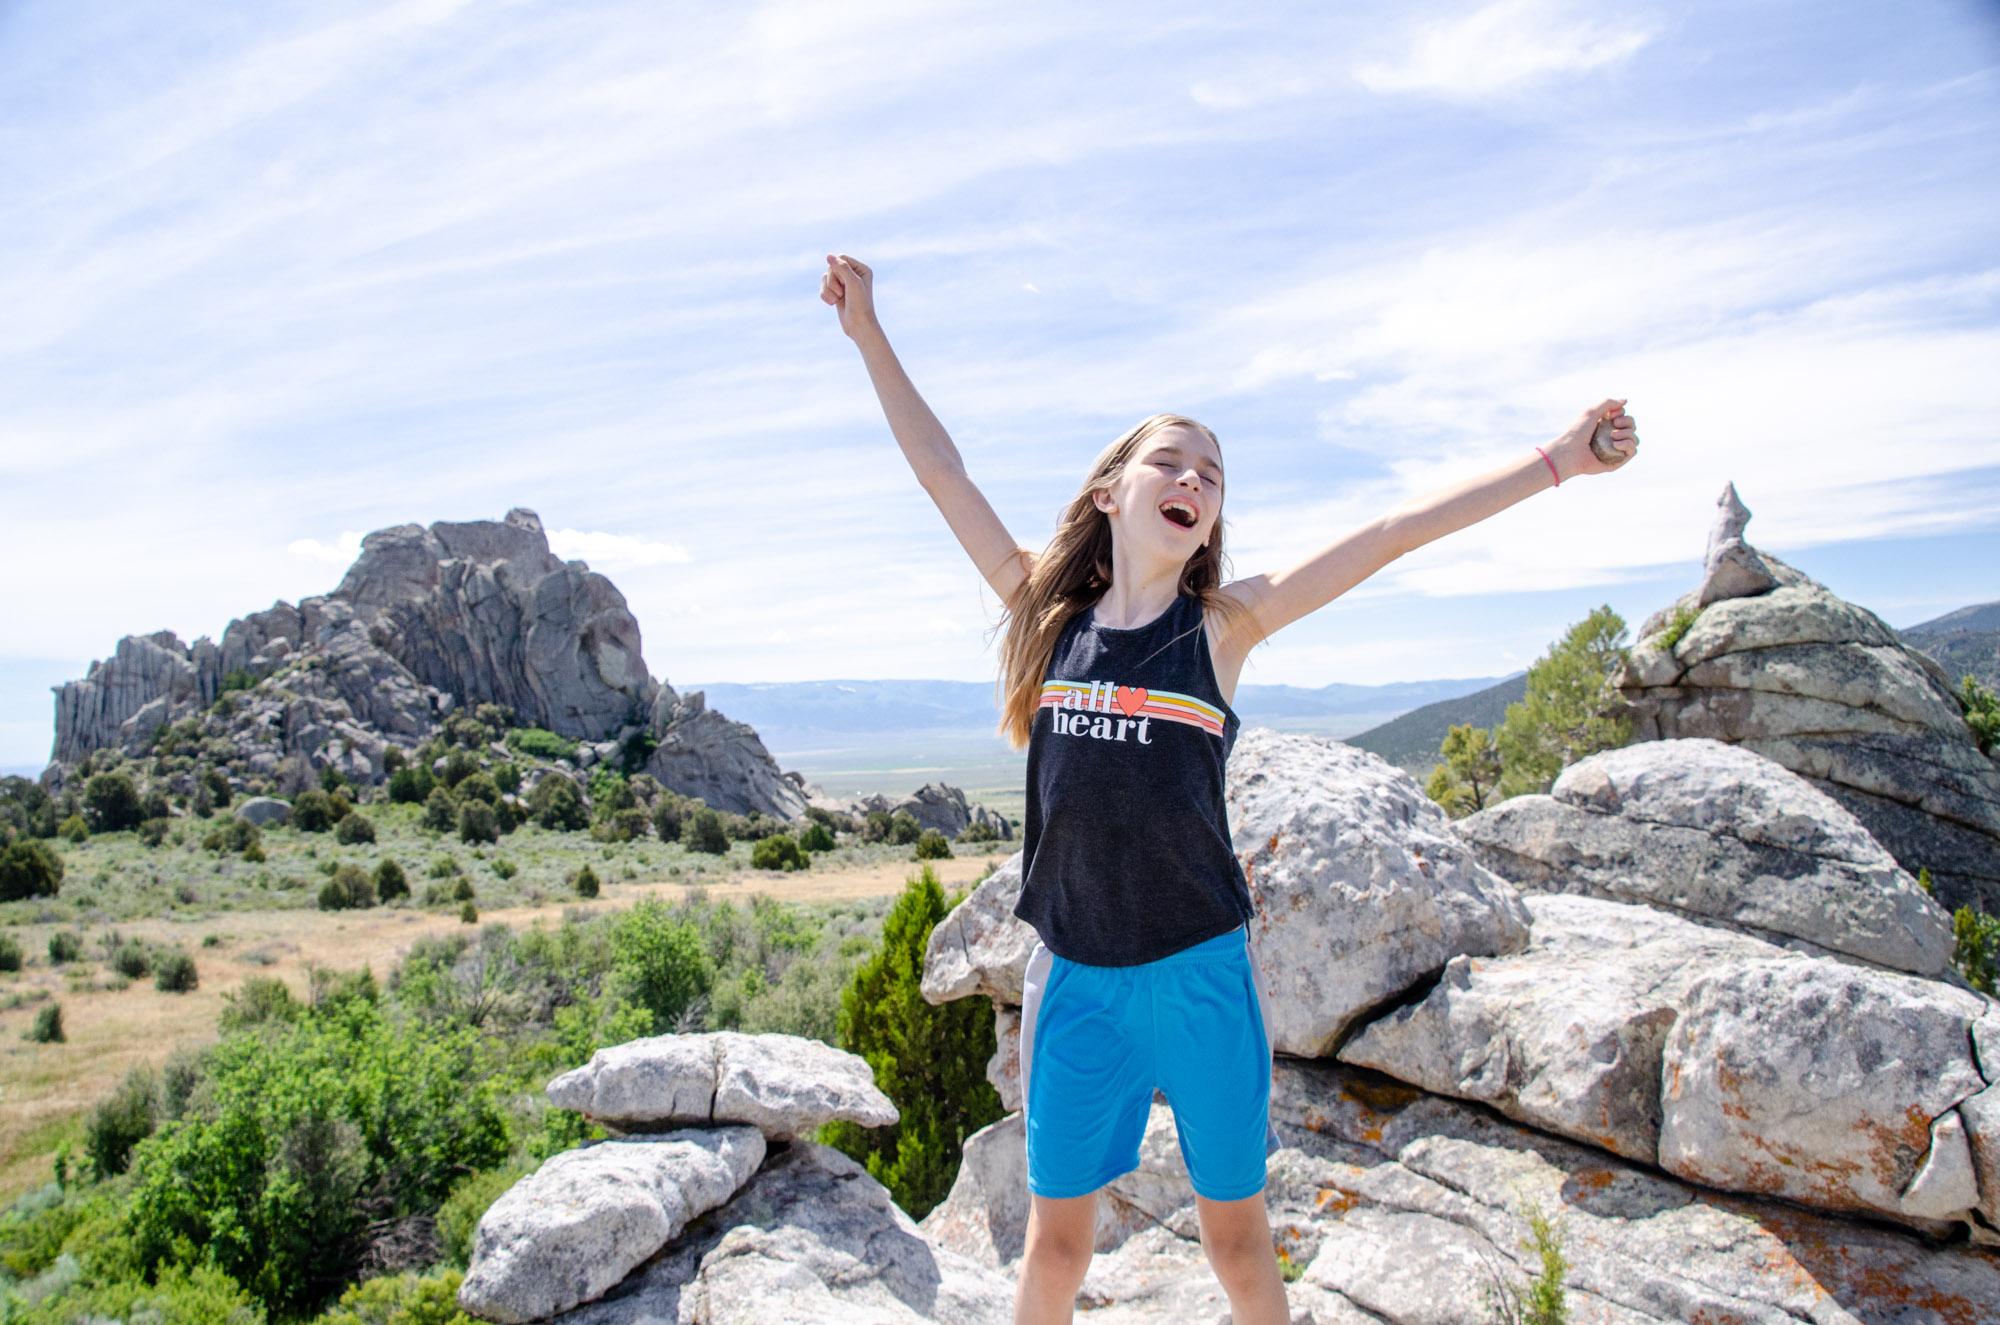 Explore the Best Hiking in Castle Rocks State Park Idaho. A young girl stands atop massive boulders inside the Castle Rocks State Park Idaho complex.